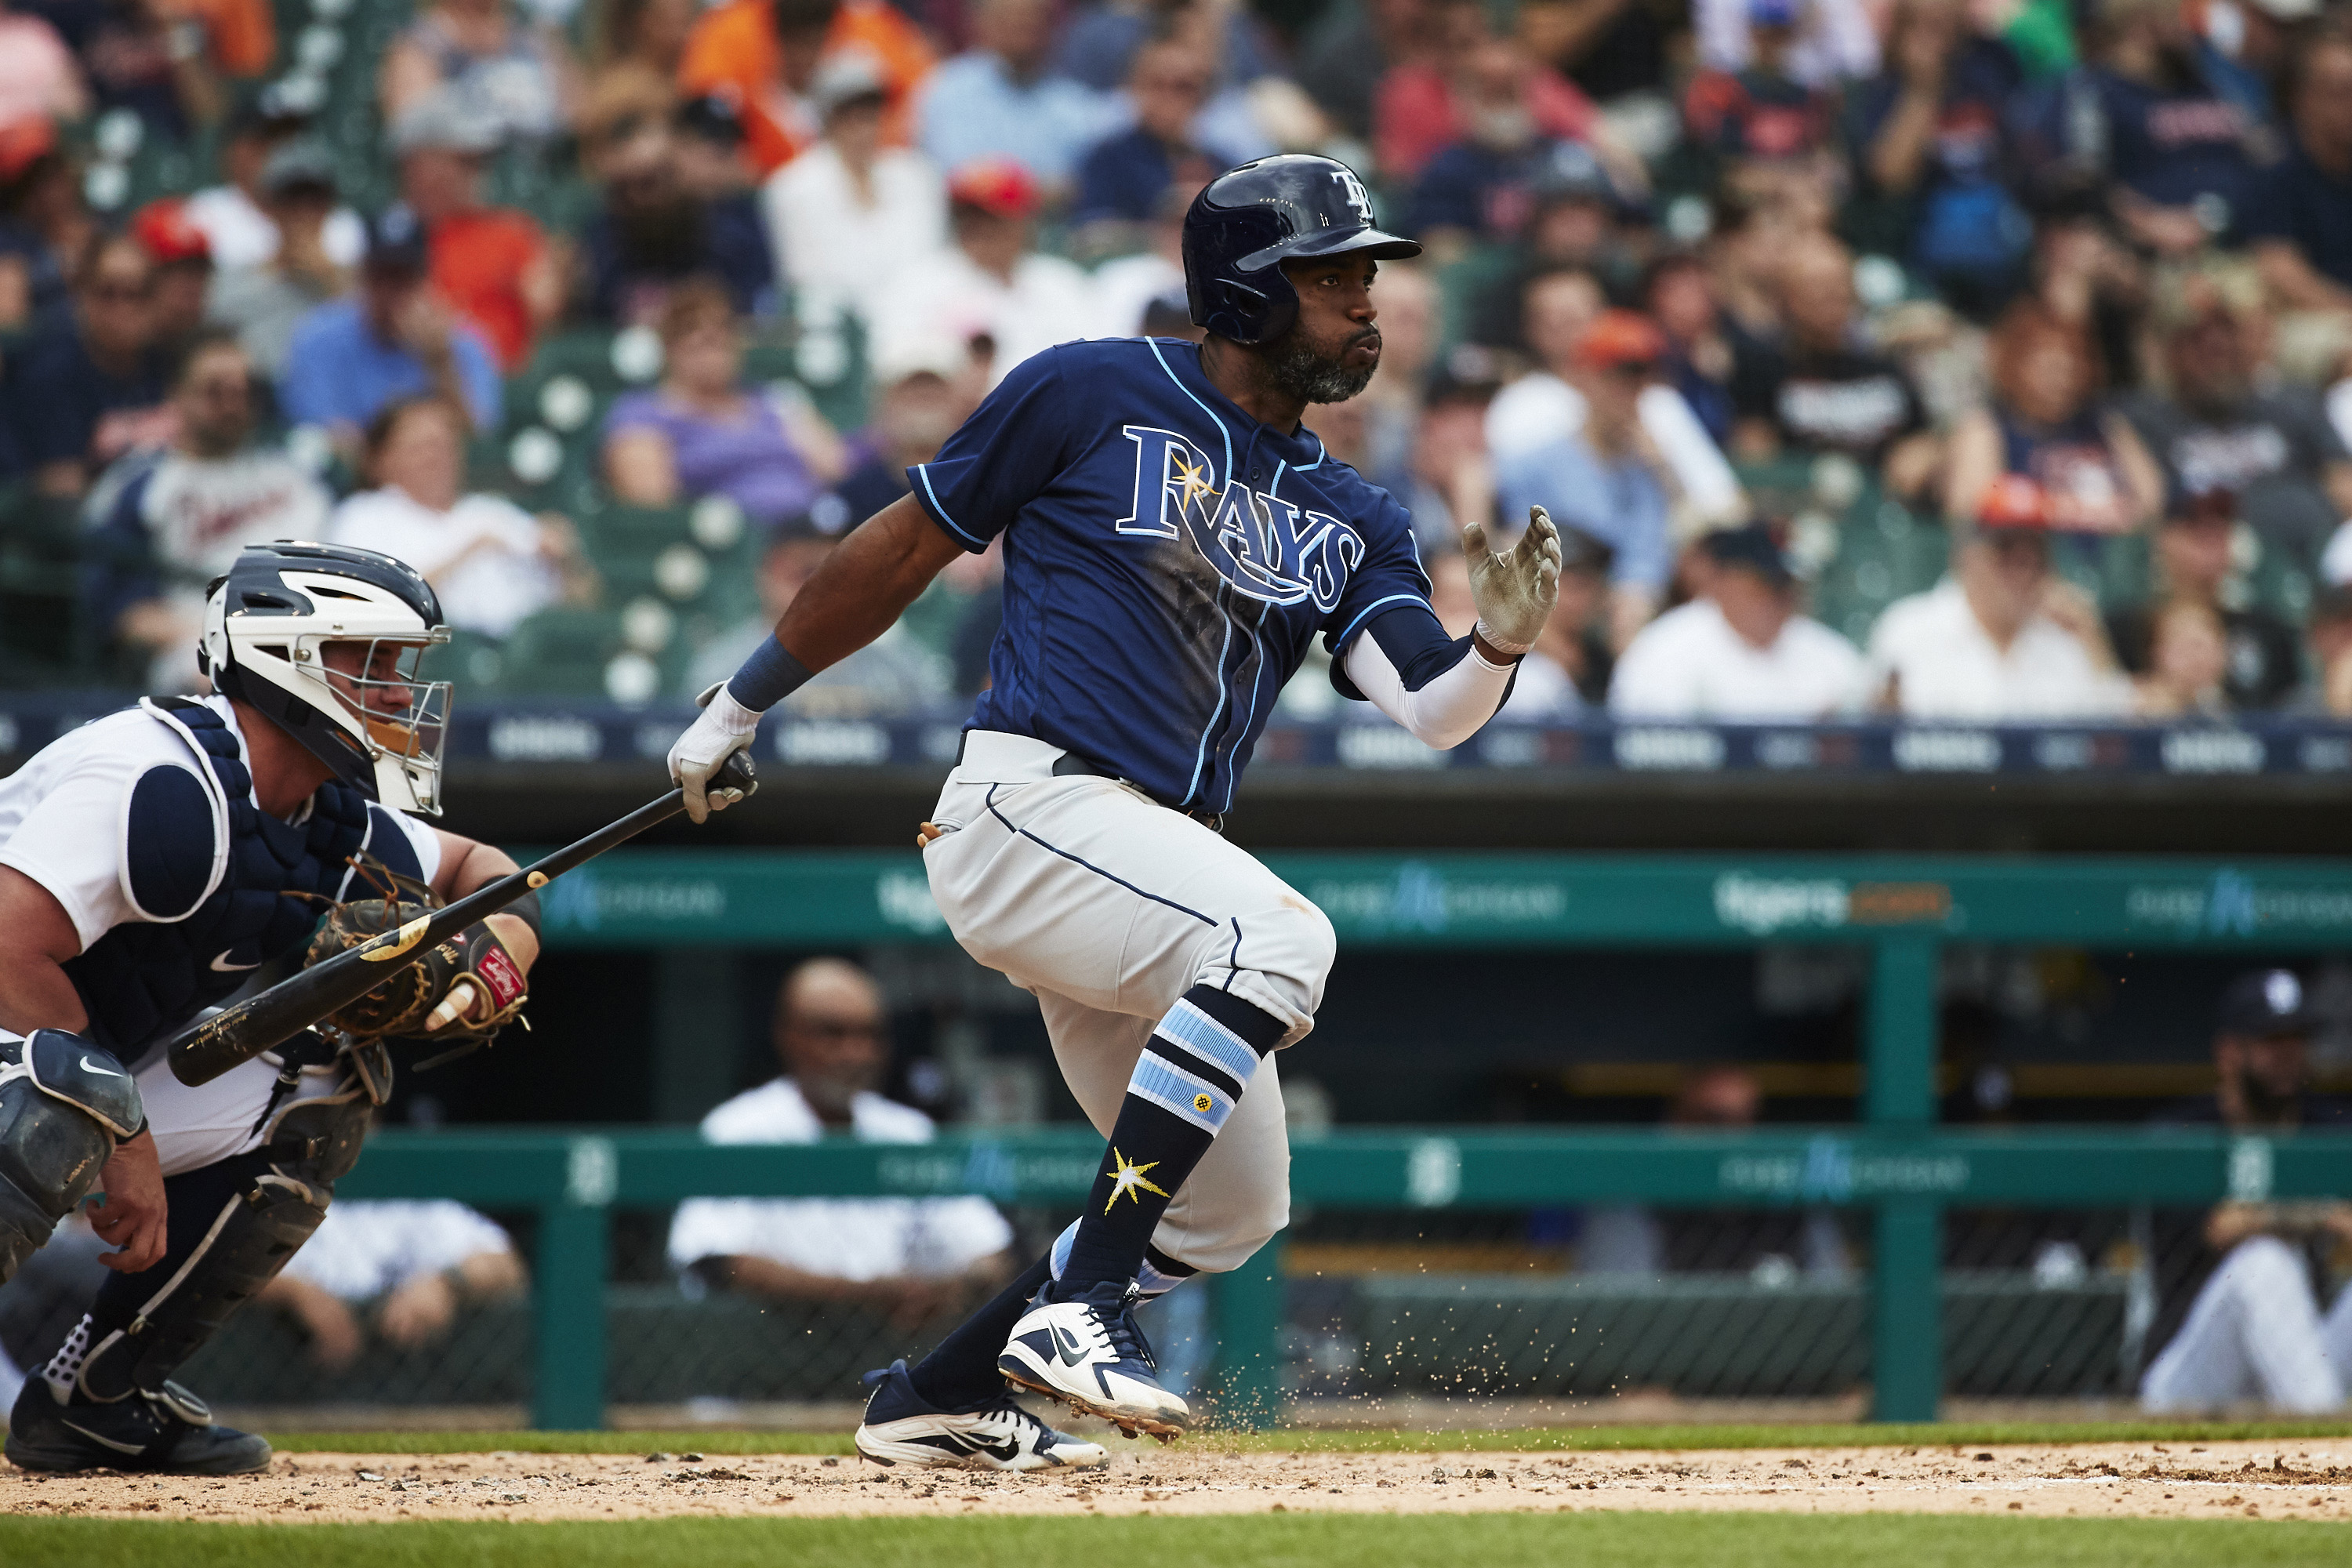 May 2, 2018; Detroit, MI, USA; Tampa Bay Rays left fielder Denard Span (2) drives in a run grounding out in the second inning against the Detroit Tigers at Comerica Park. Mandatory Credit: Rick Osentoski-USA TODAY Sports